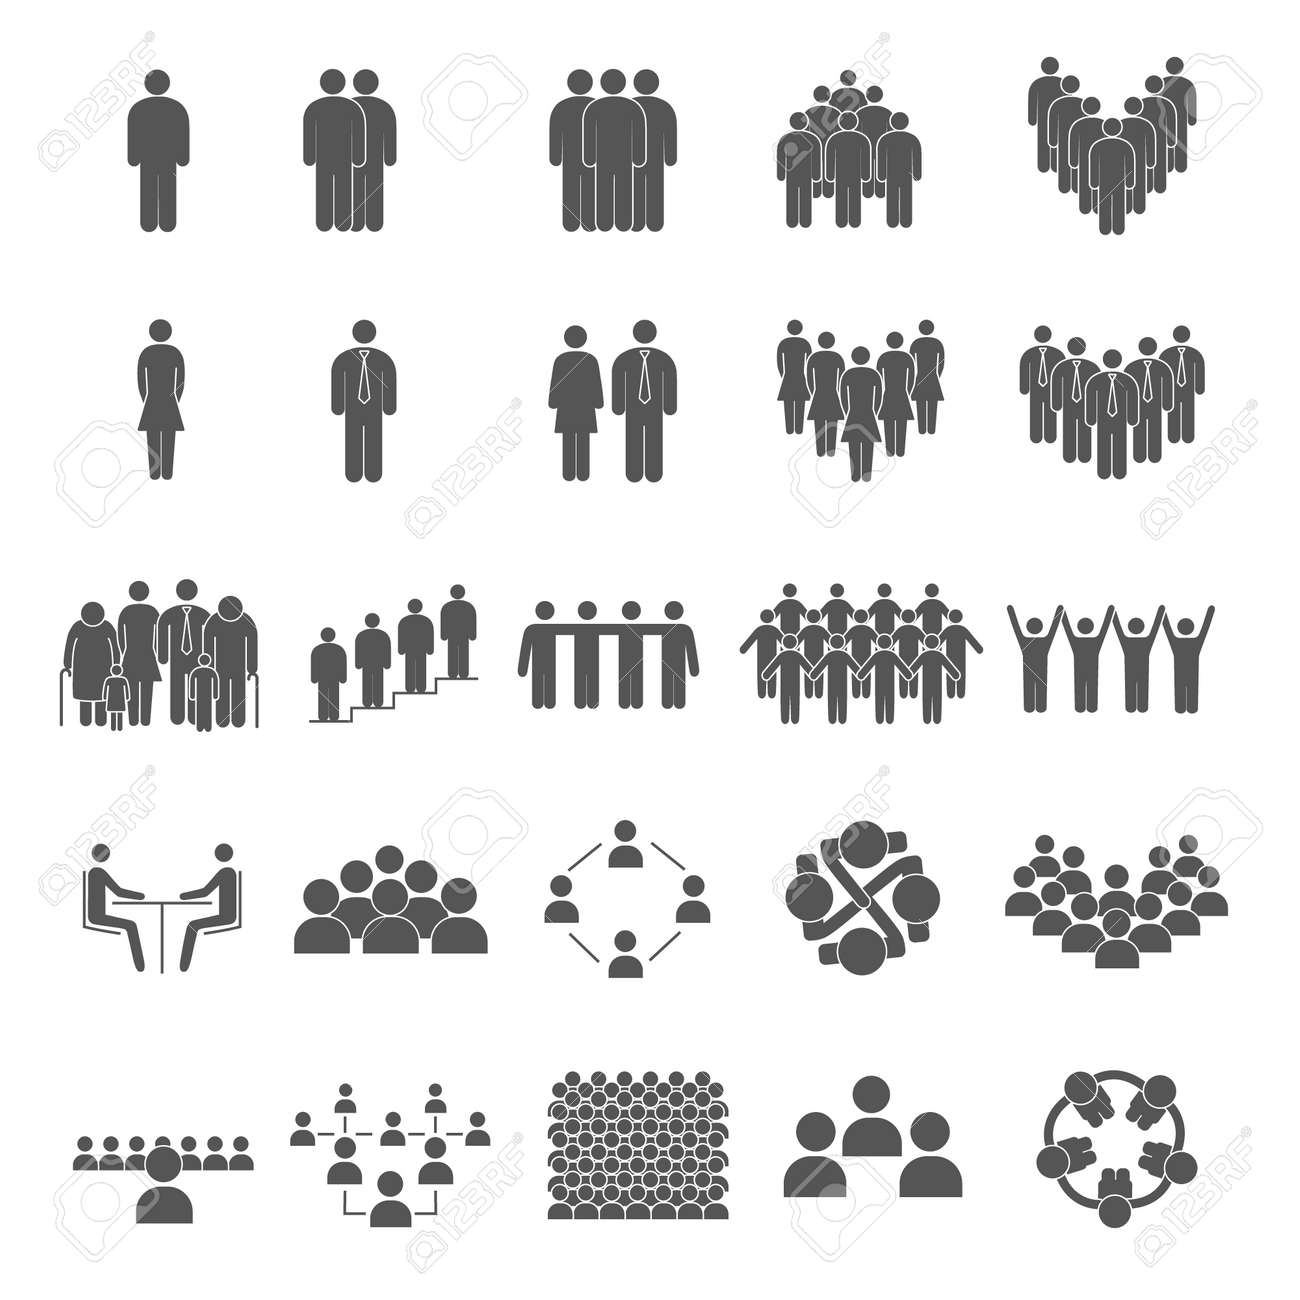 Set of grouping people icons - 144841387